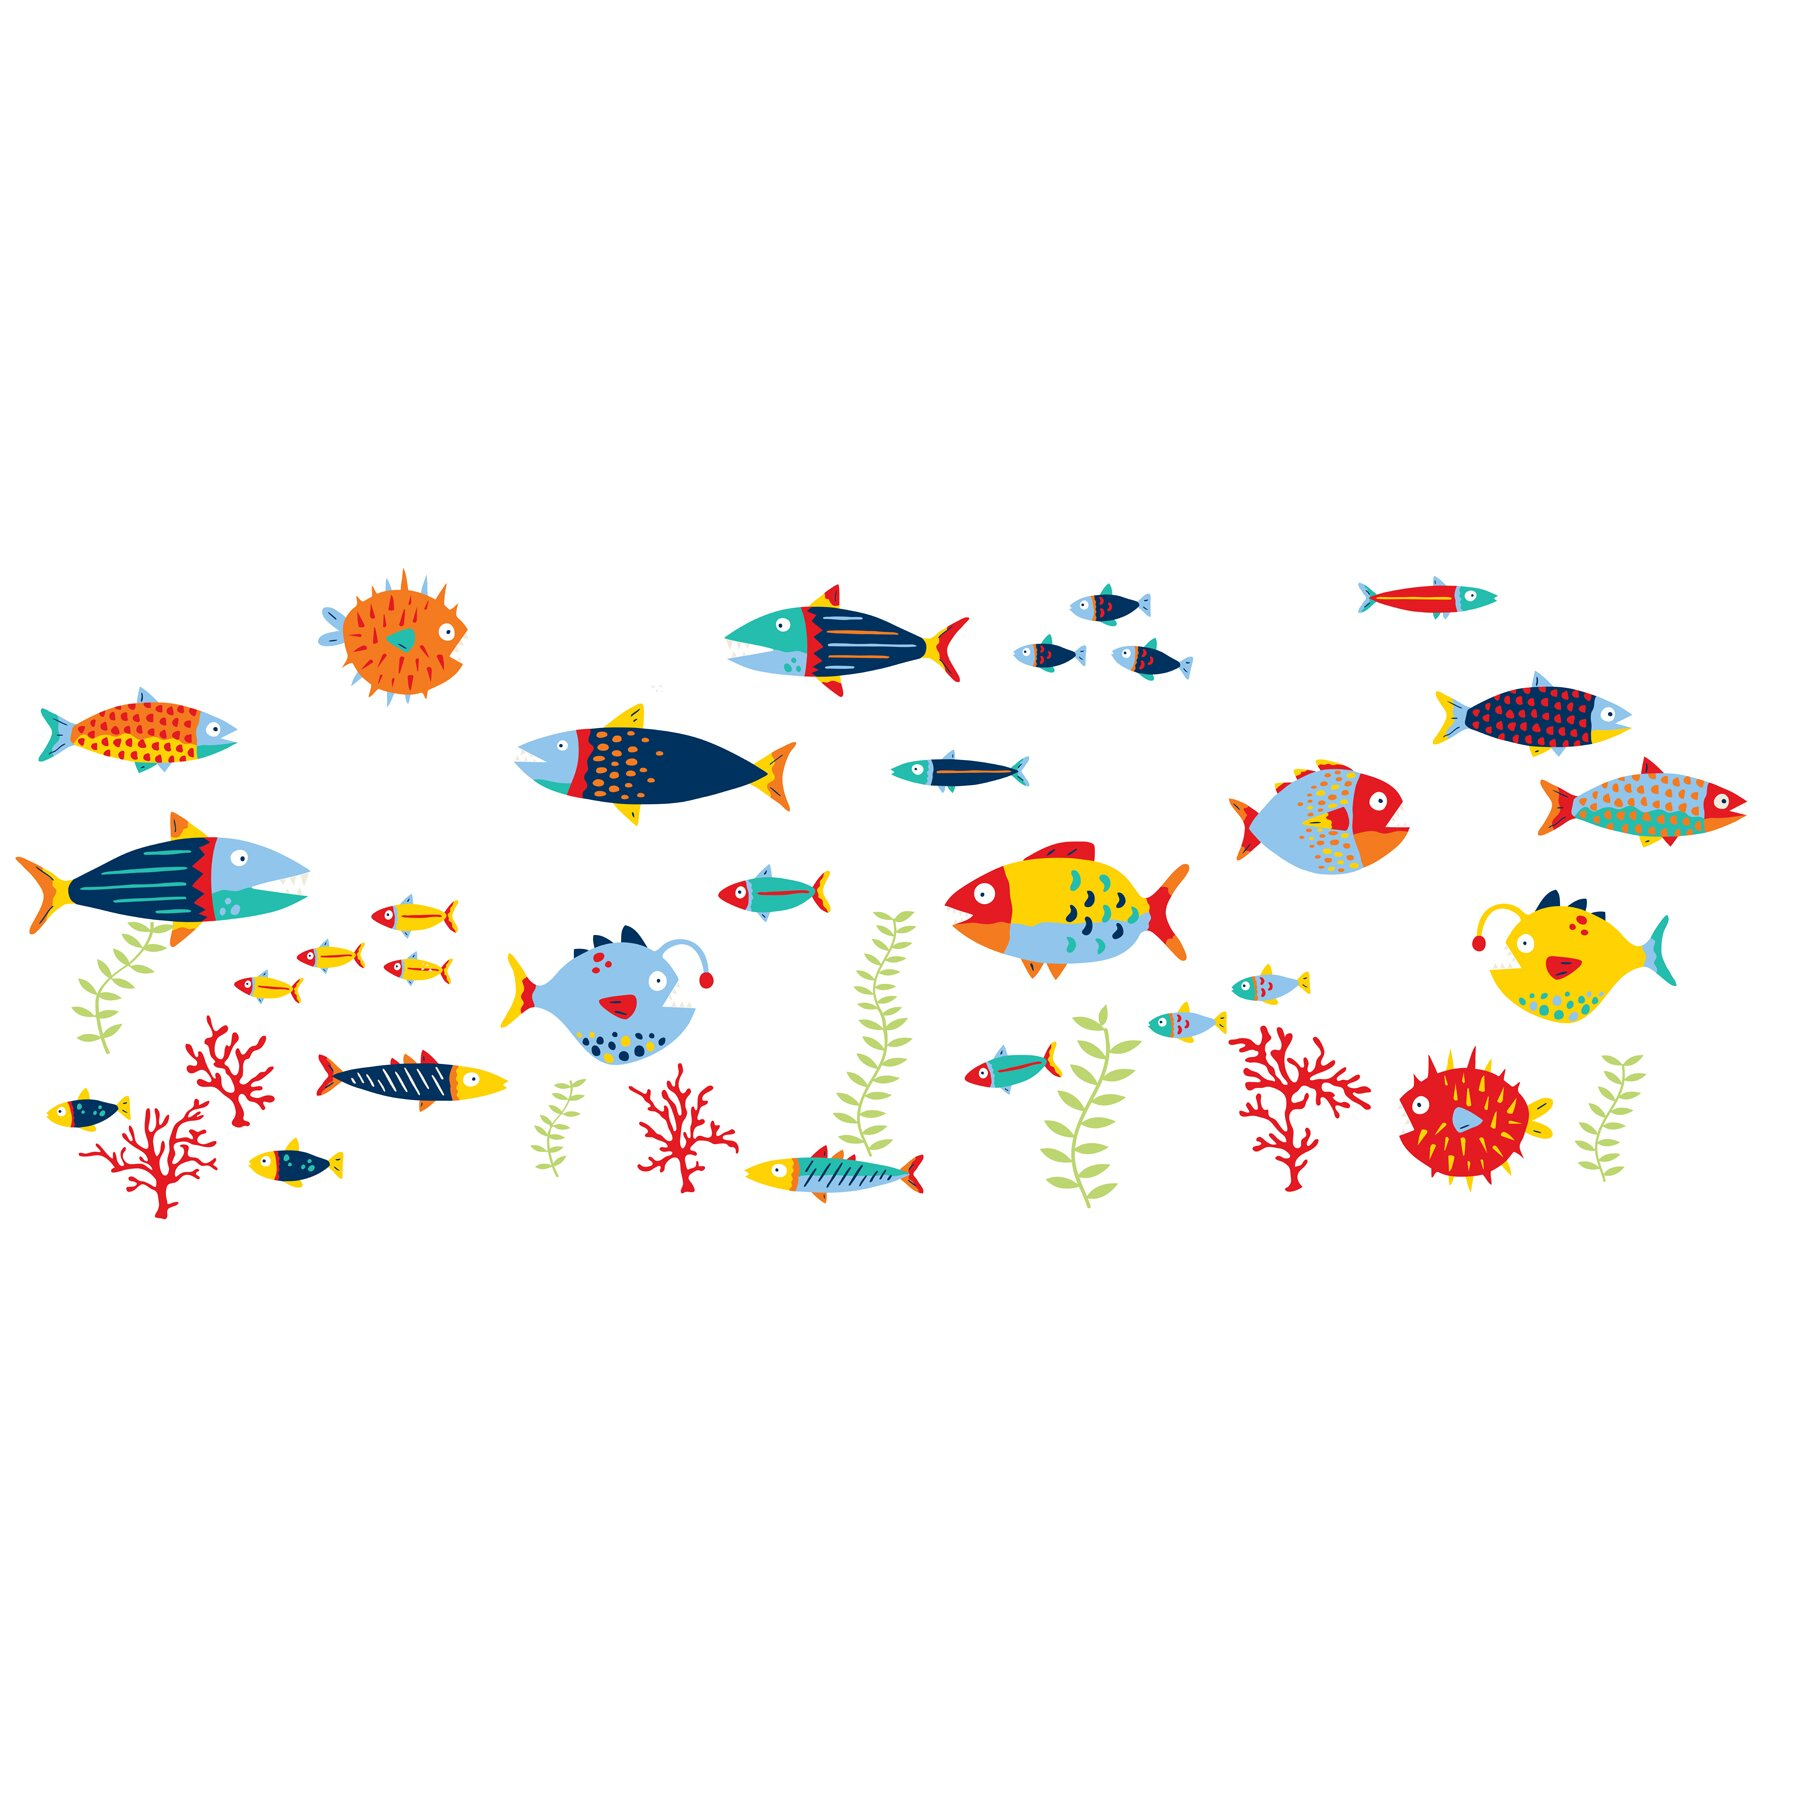 Wall Art Stickers Next Day Delivery : Wallpops wall art kit fish tales decal reviews